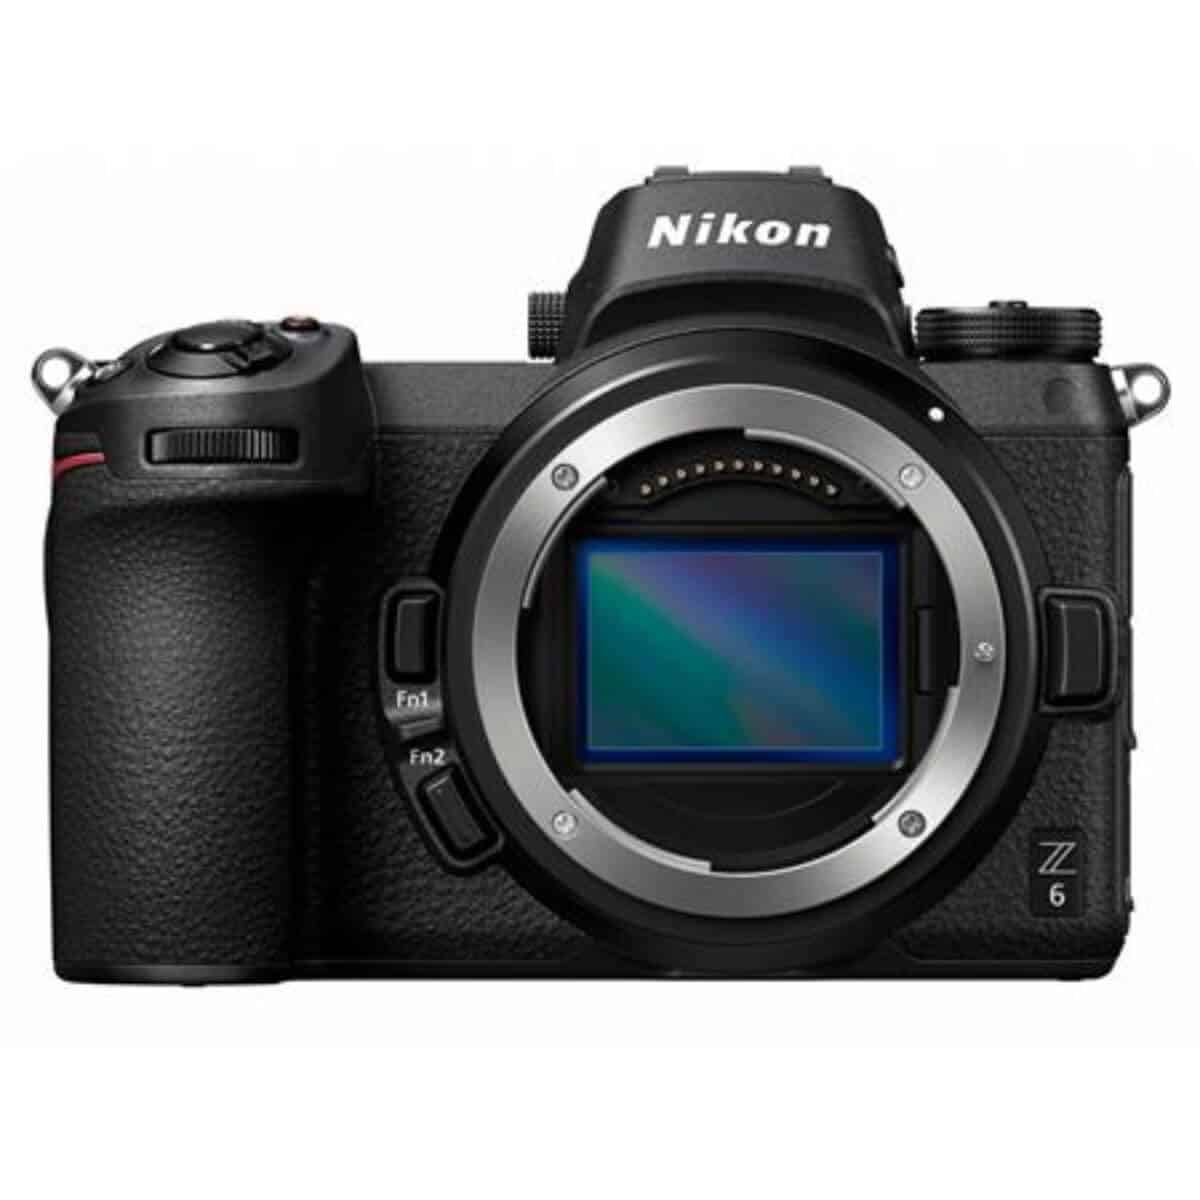 Nikon Z6 camera without the lens.